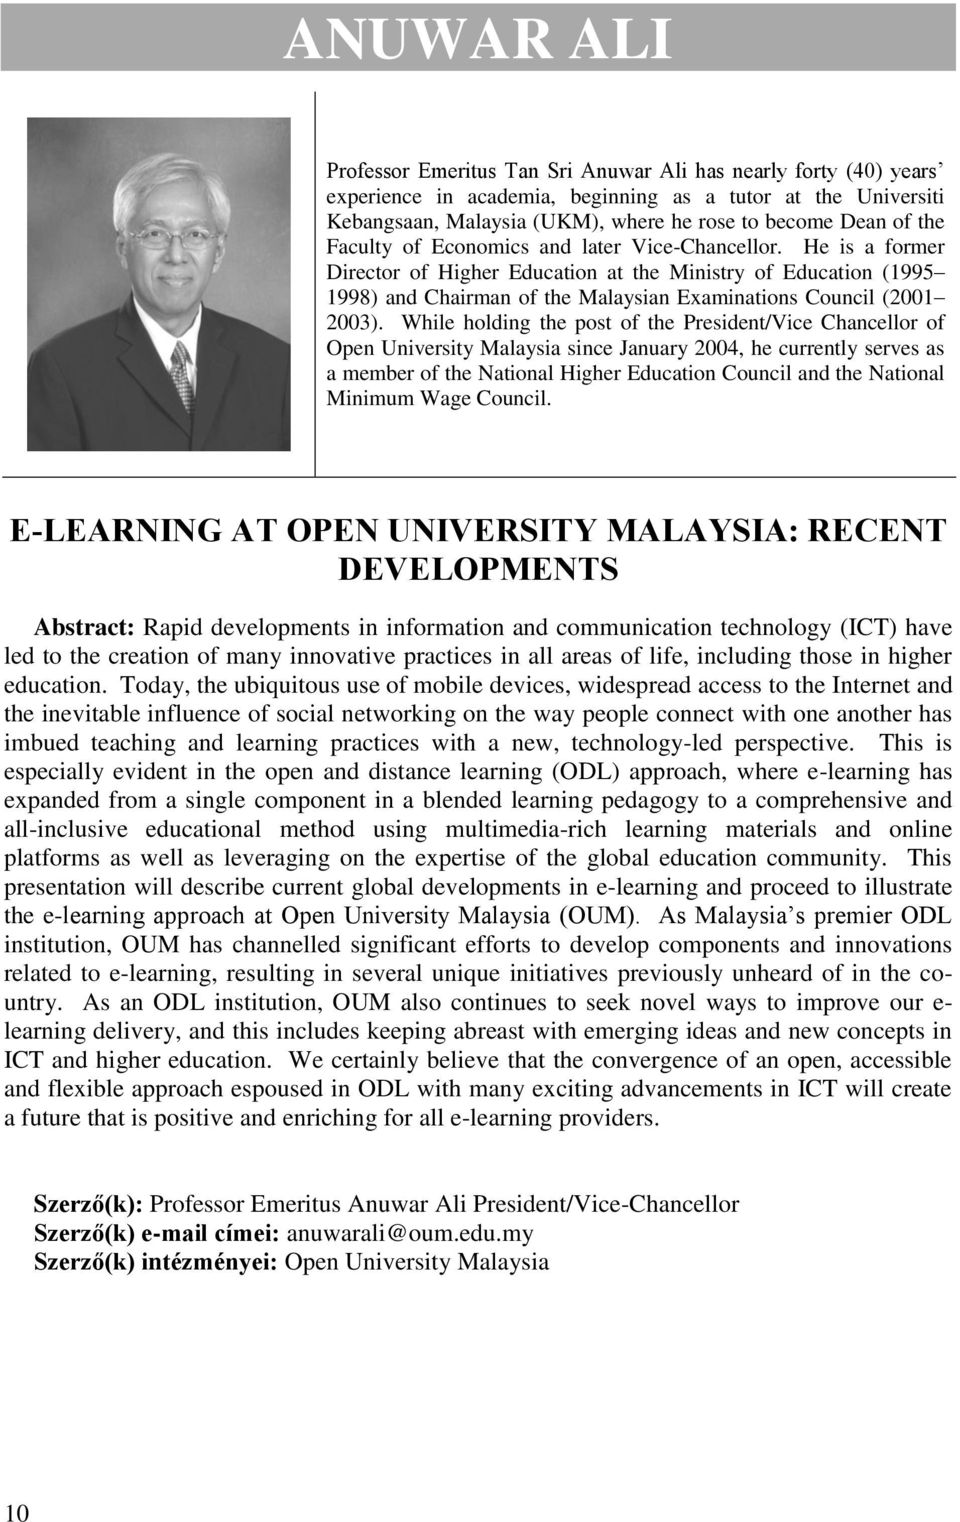 While holding the post of the President/Vice Chancellor of Open University Malaysia since January 2004, he currently serves as a member of the National Higher Education Council and the National